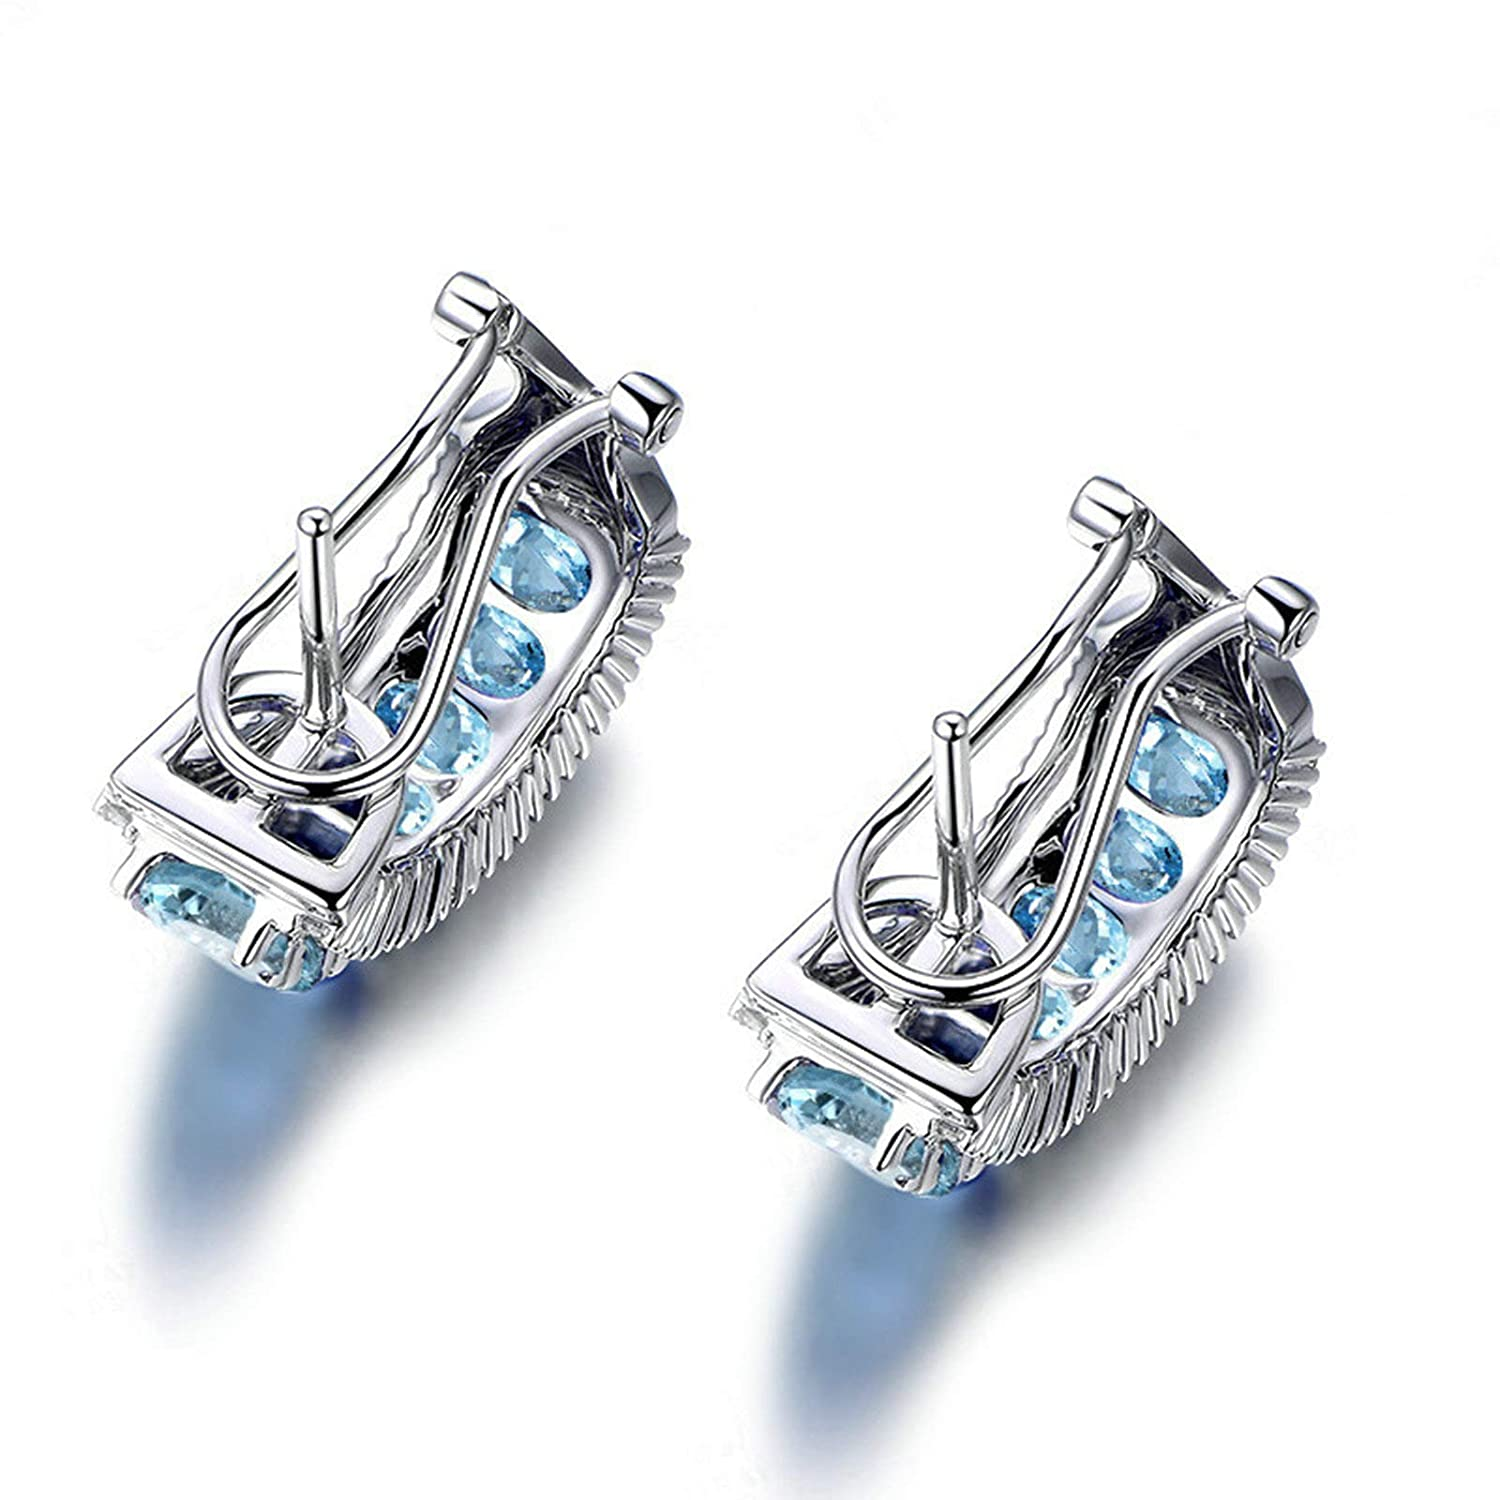 Women Earrings Fashion Earrings 925 Silver Oval Topaz Post with French Clip